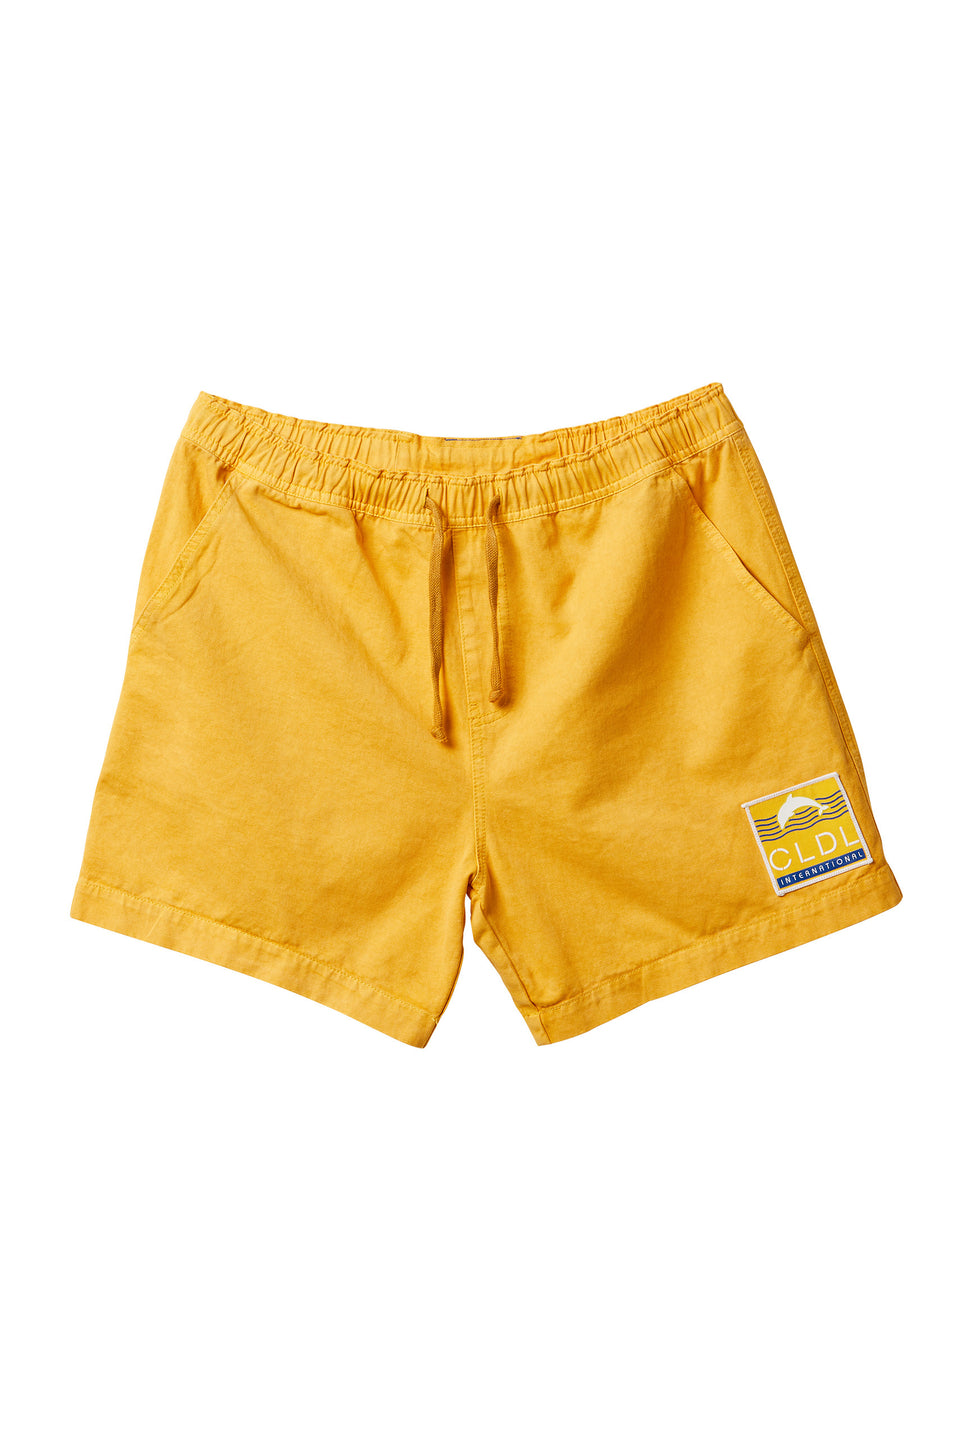 Fantasy Leisure Short (CLDL-013)